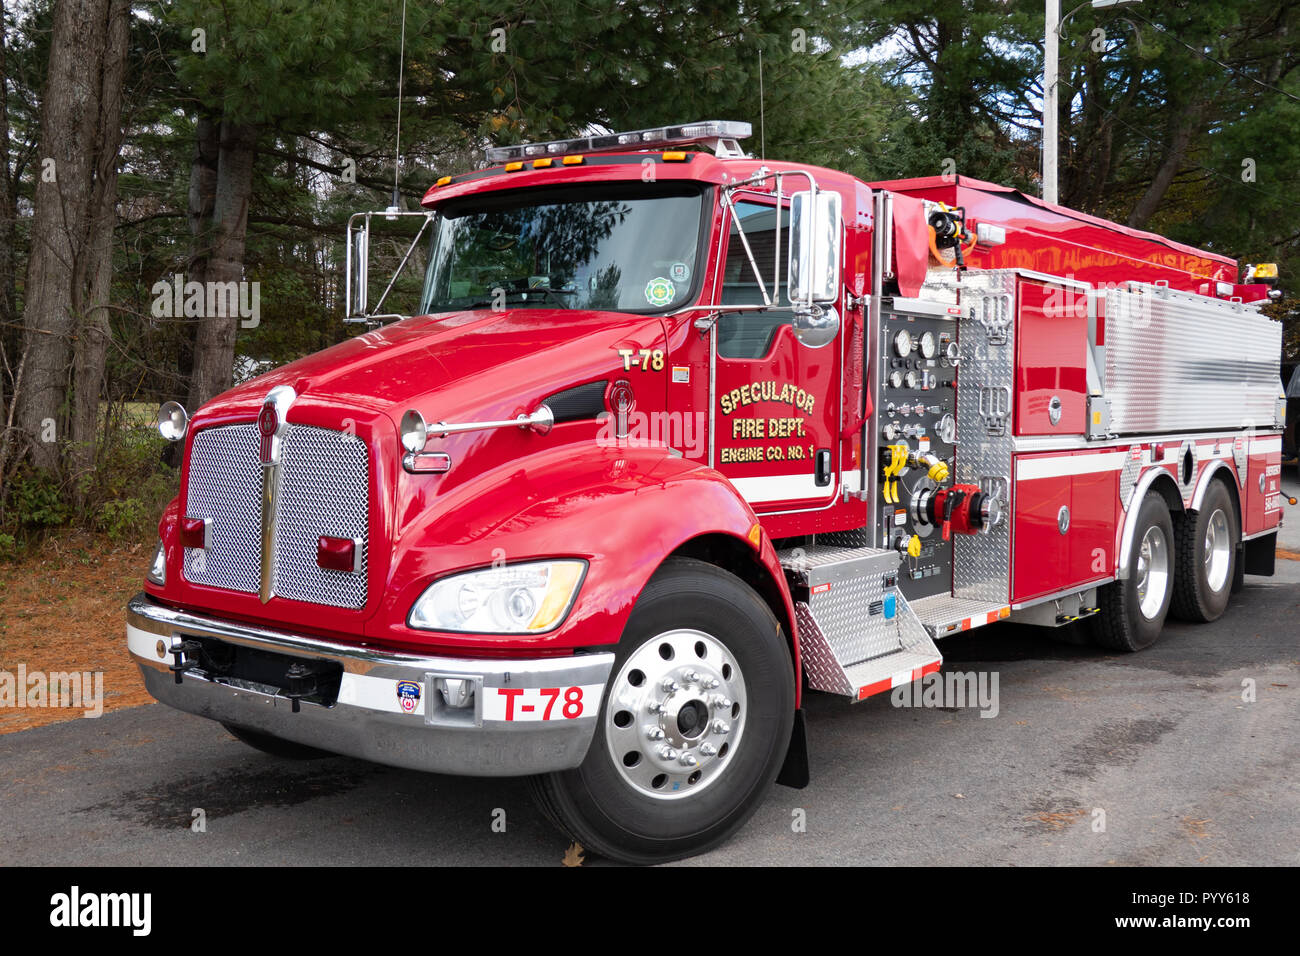 A Kenworth fire truck at the Speculator Fire Dept. in Speculator, NY USA - Stock Image